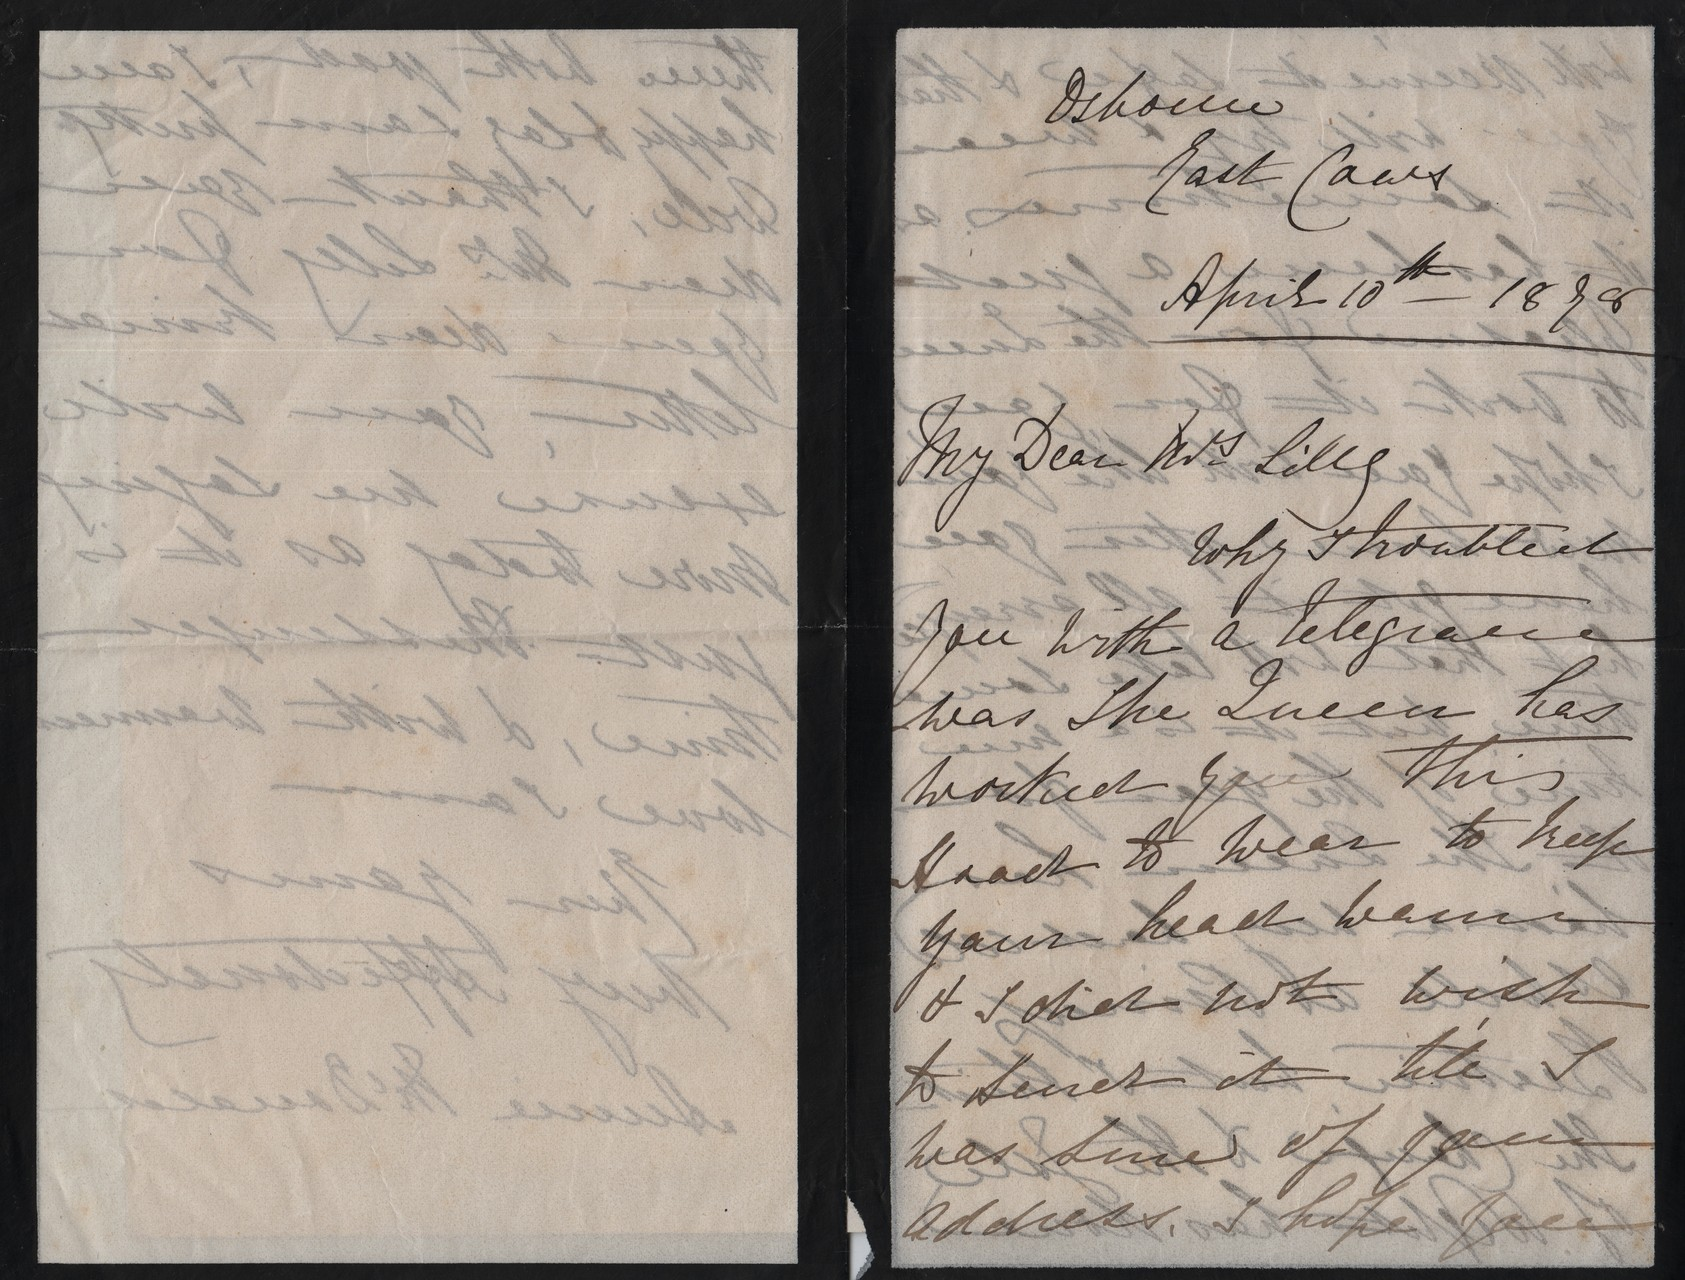 1878 10.4. Annie MacDonald to MDL